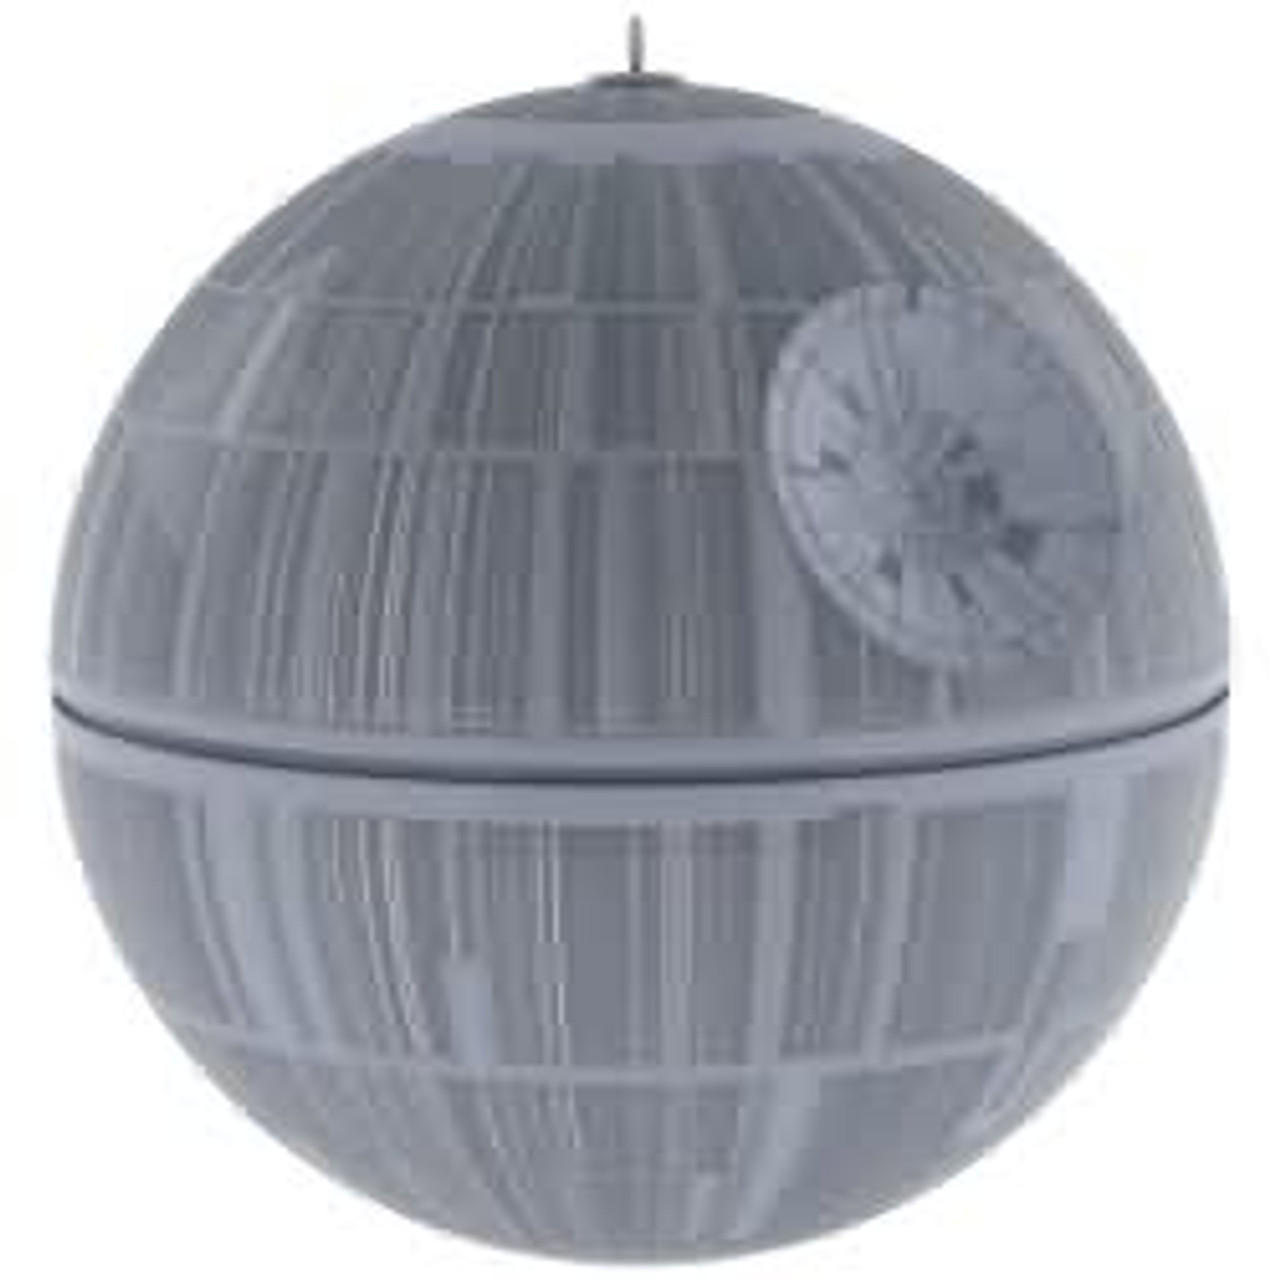 Hallmark Magic Ornament 2017 A Duel to the Death Star Wars A New Hope